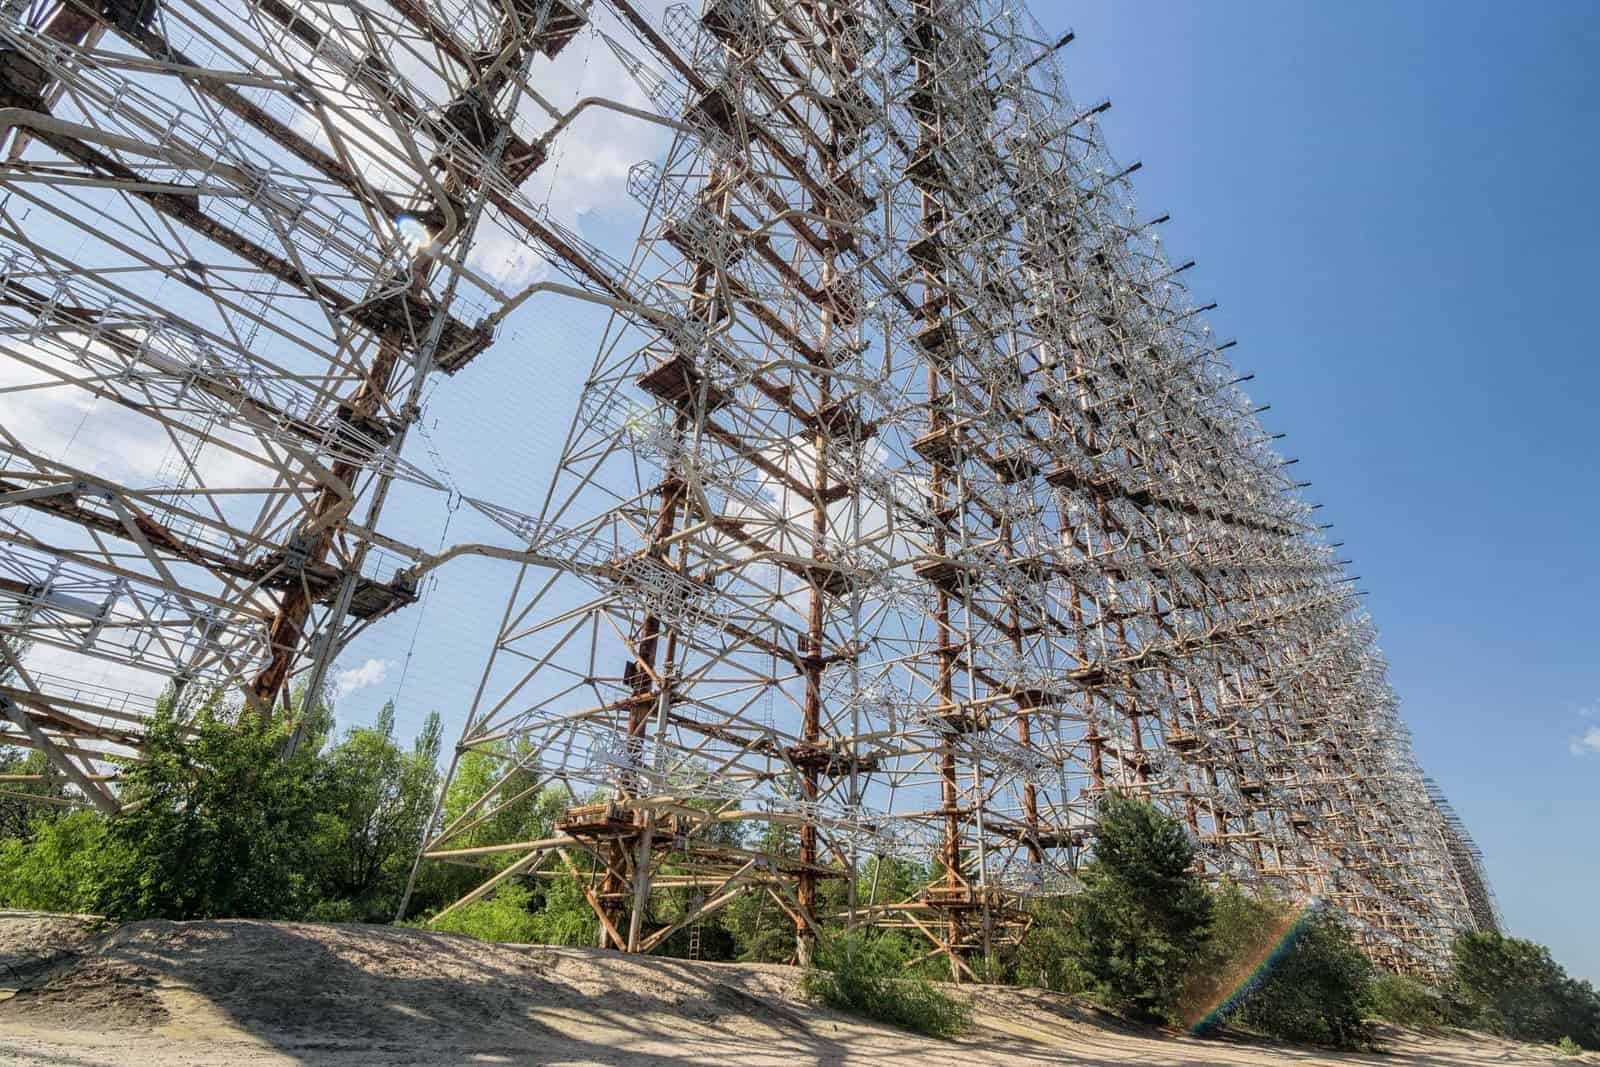 Chernobyl Duga 3 Antenna System Featured Image